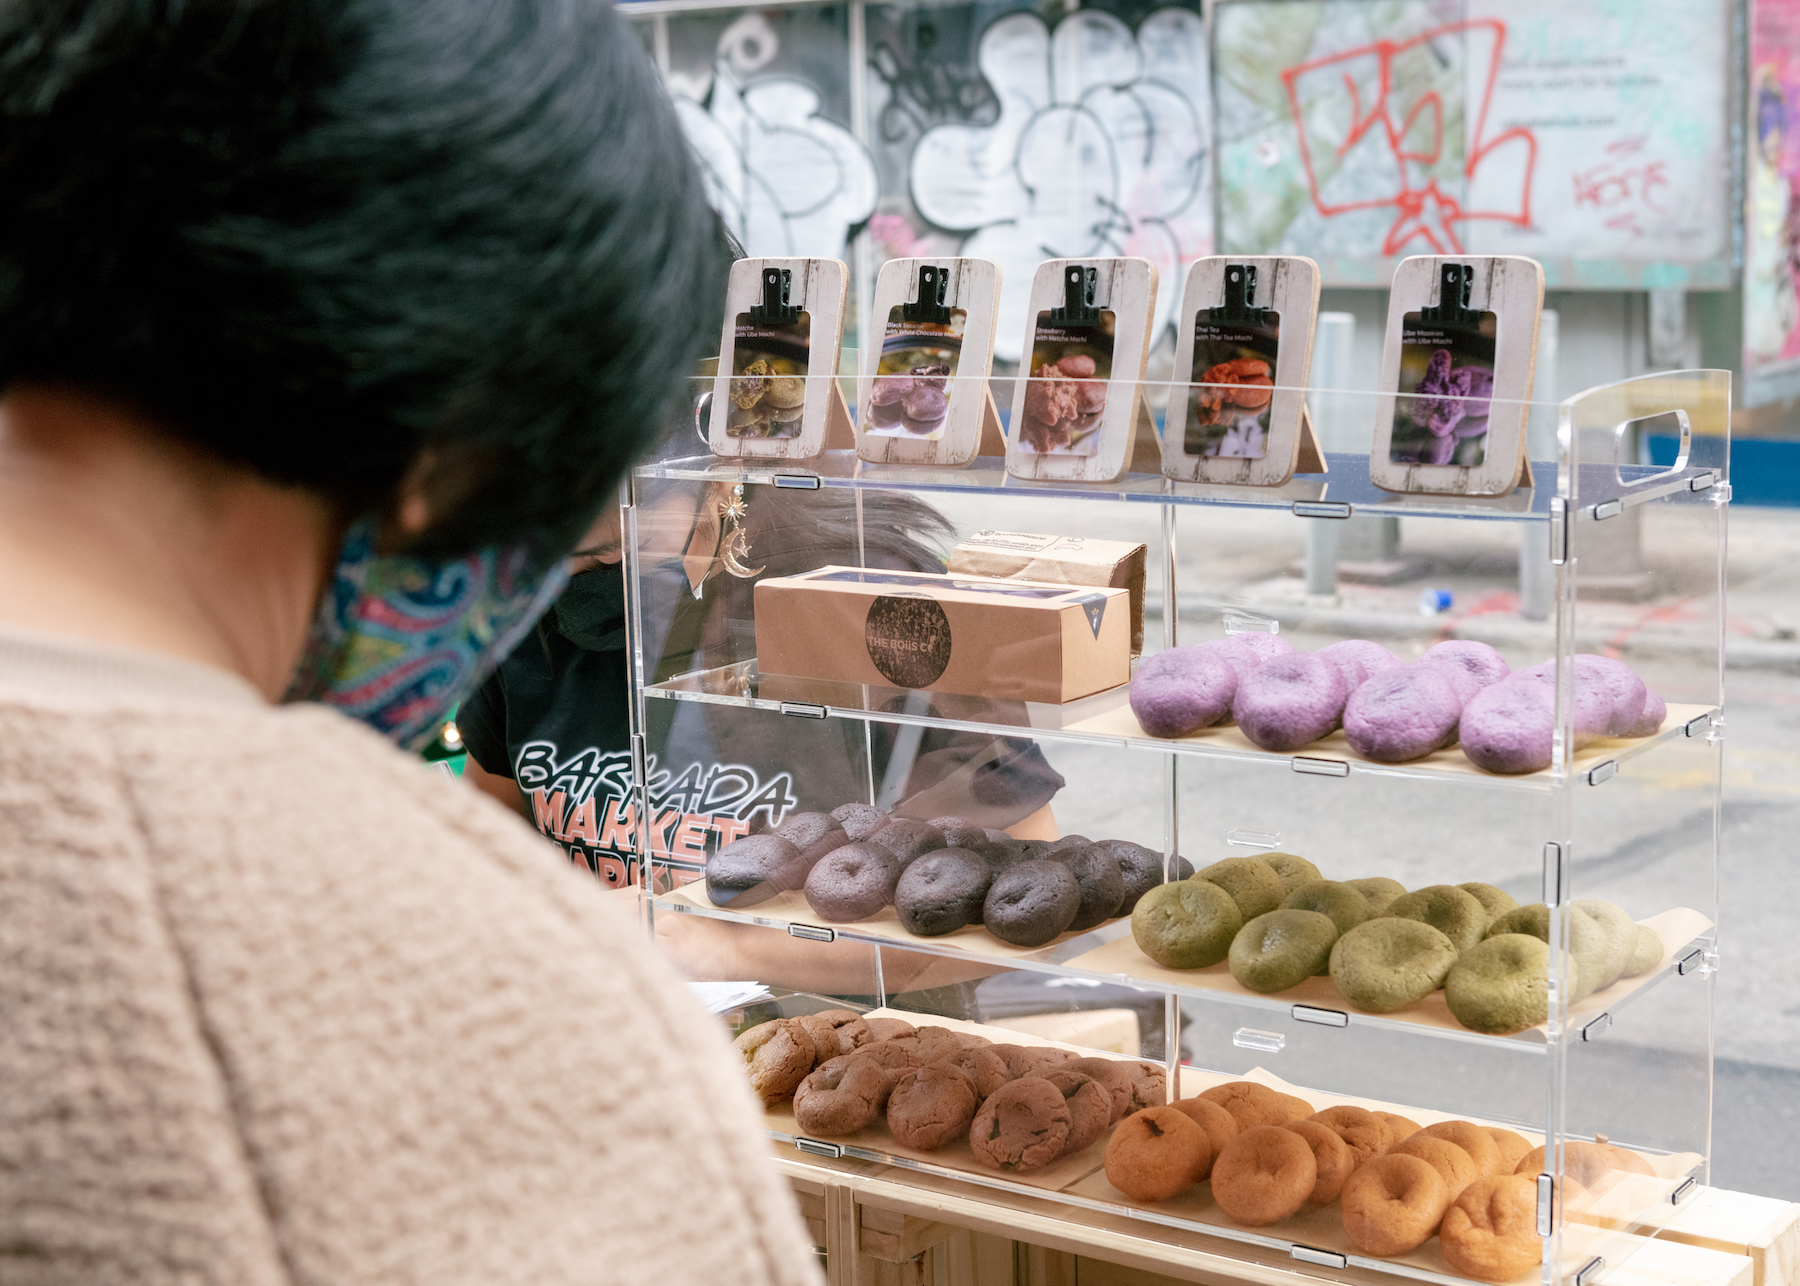 Multi-colored cookies placed in a display cake and a woman is looking at them